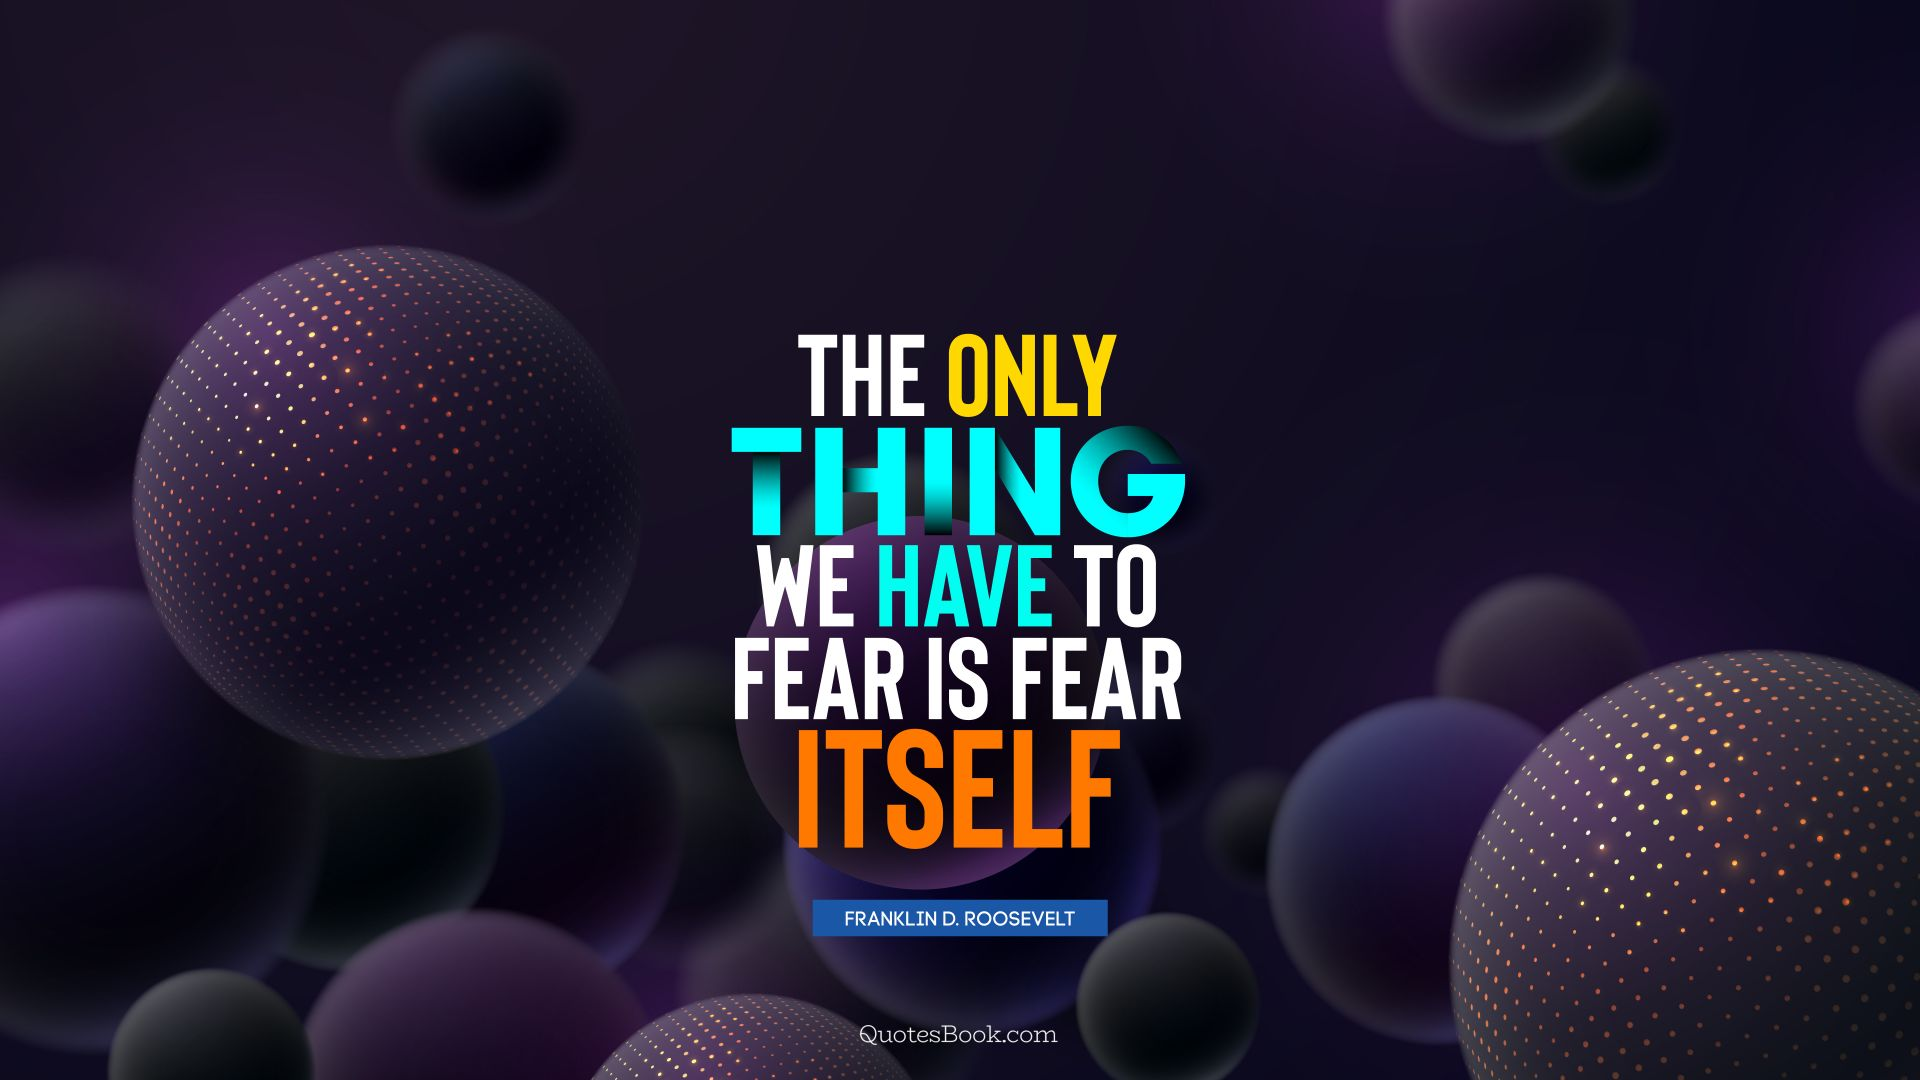 The only thing we have to fear is fear itself. - Quote by Franklin D. Roosevelt